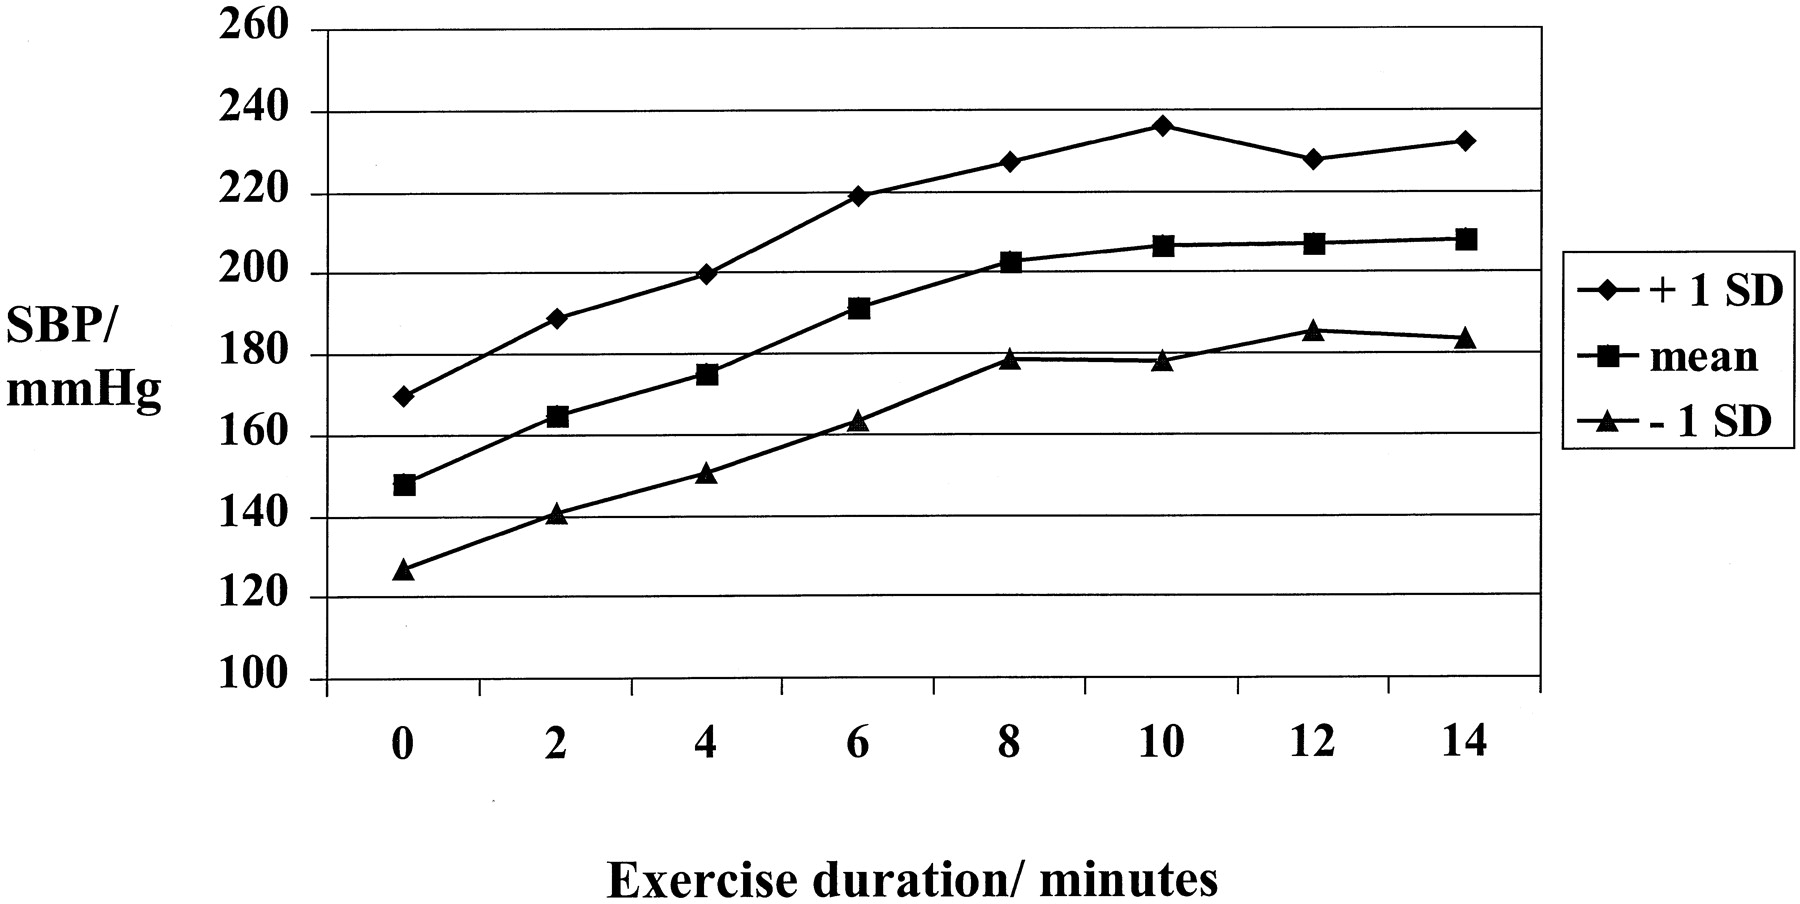 does blood pressure raise with exercise